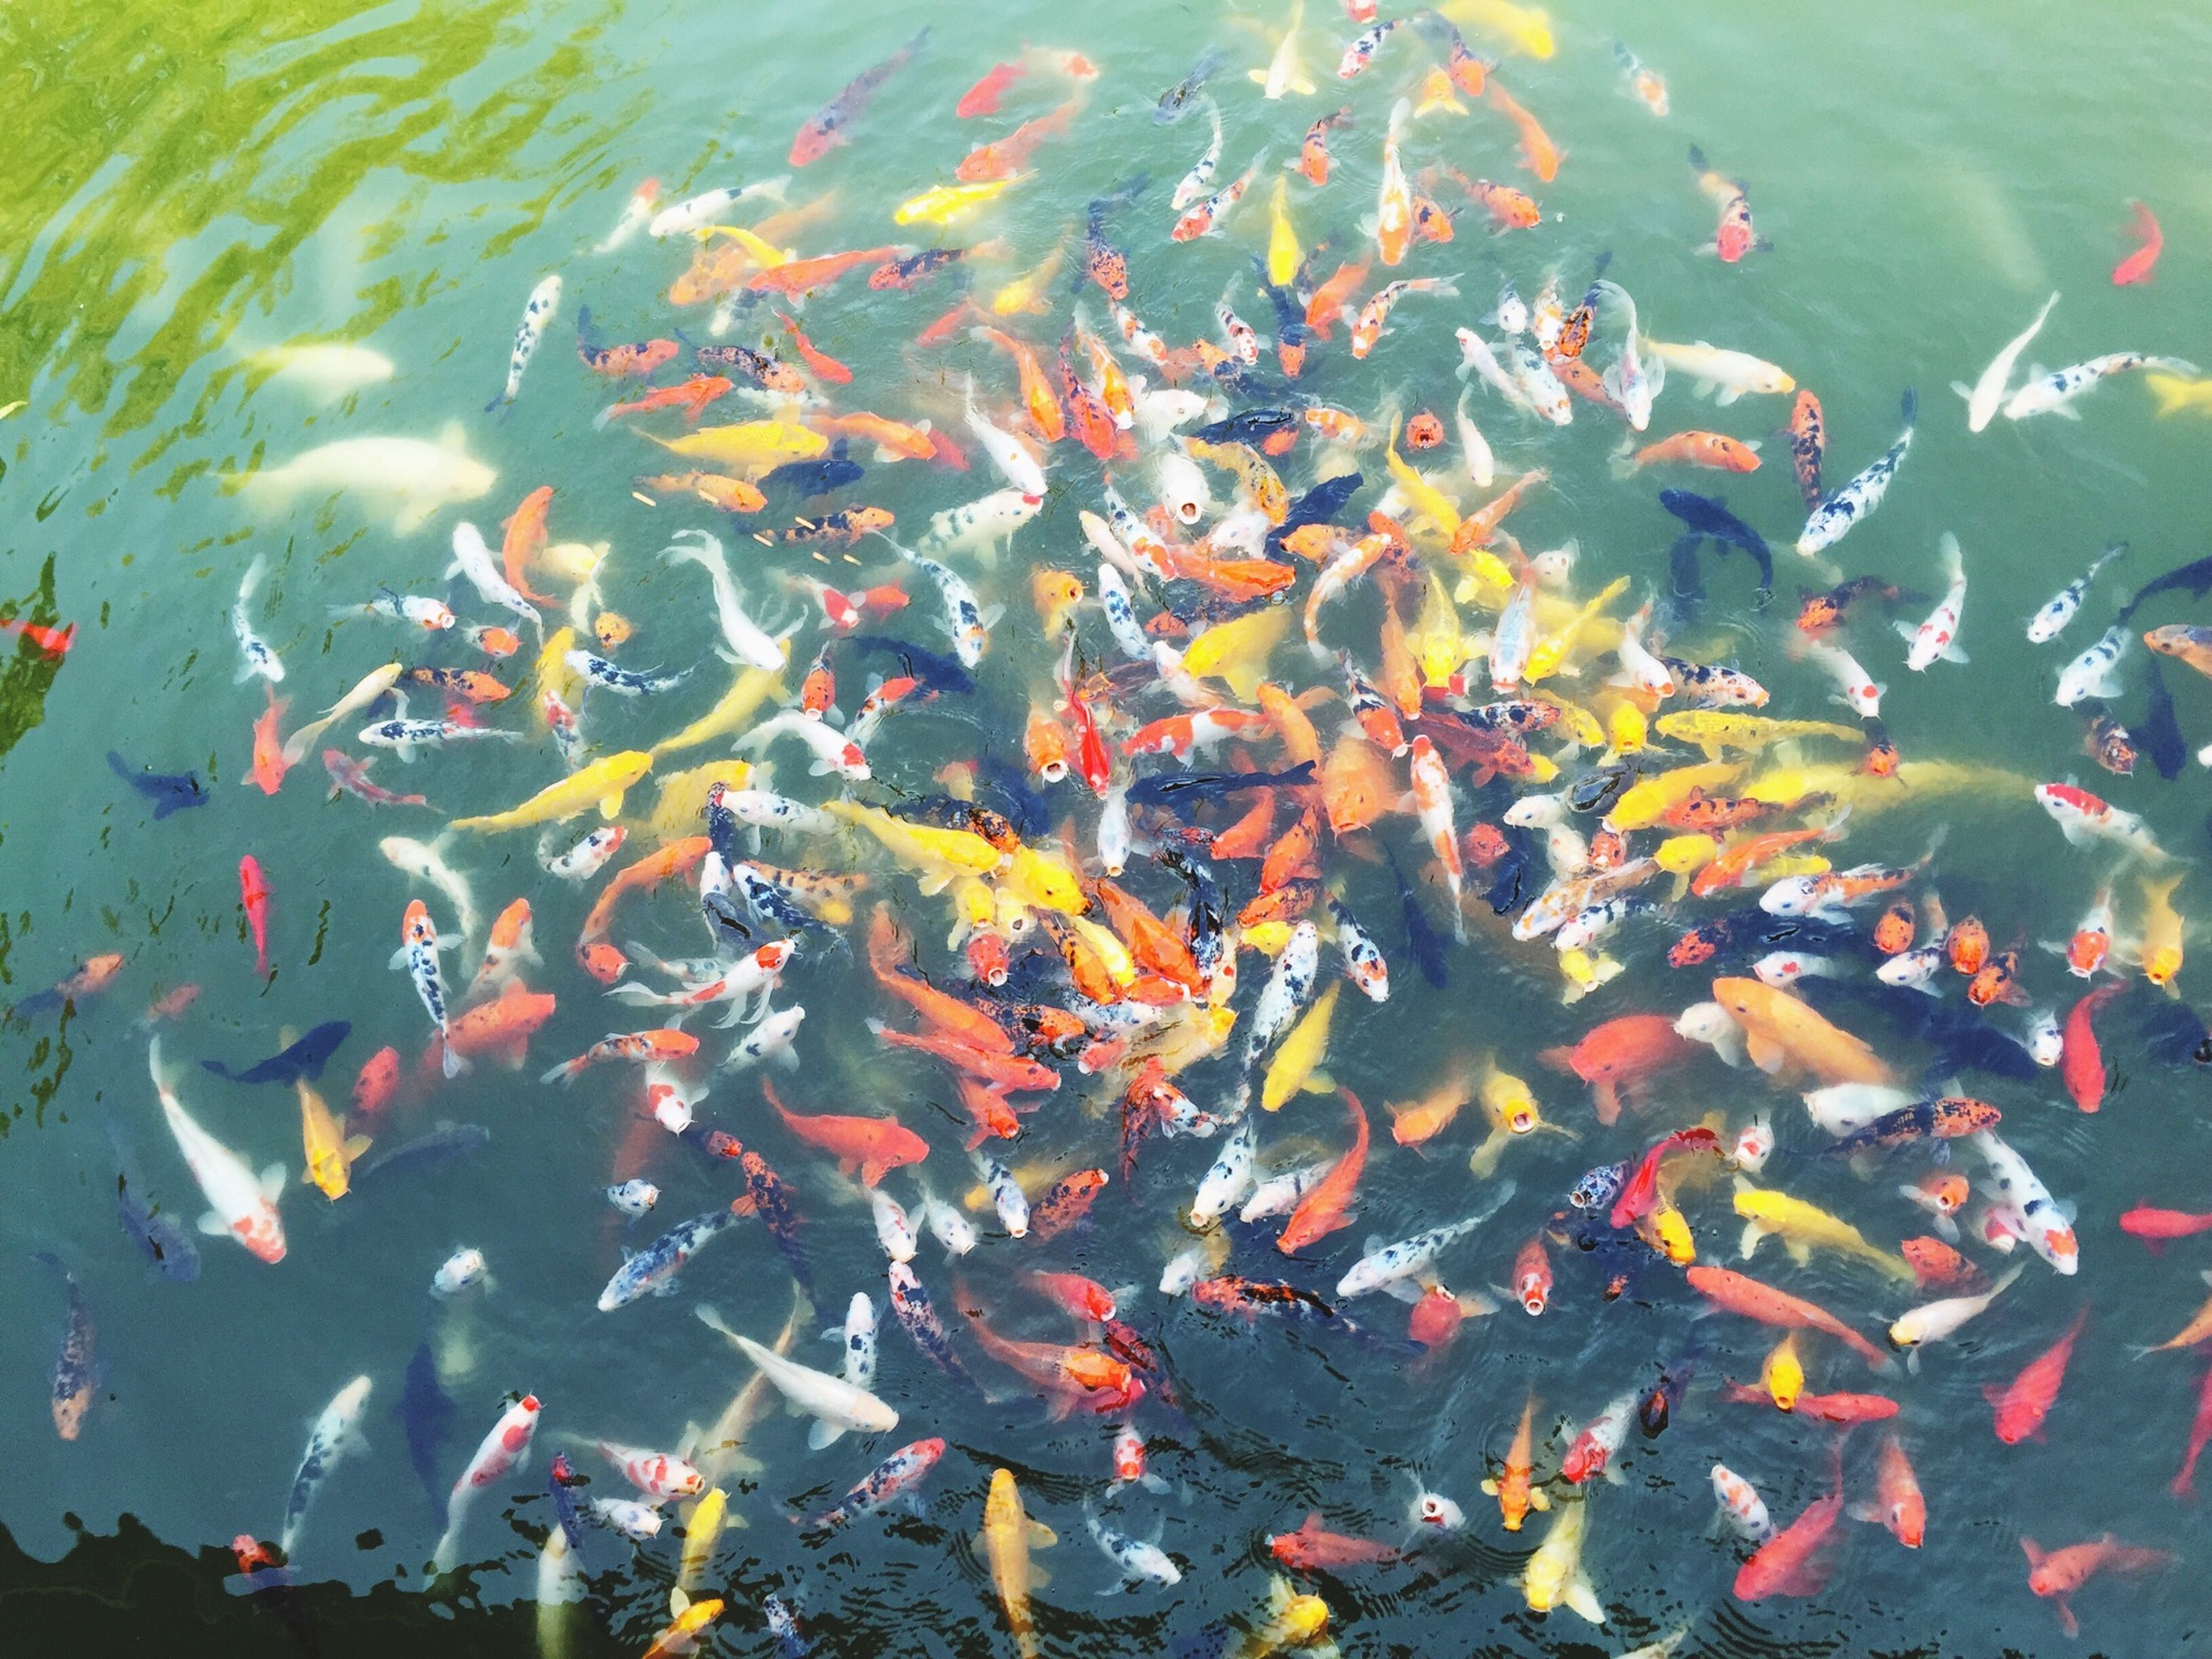 water, high angle view, pond, swimming, fish, animal themes, reflection, floating on water, lake, nature, school of fish, waterfront, koi carp, animals in the wild, beauty in nature, leaf, outdoors, day, full frame